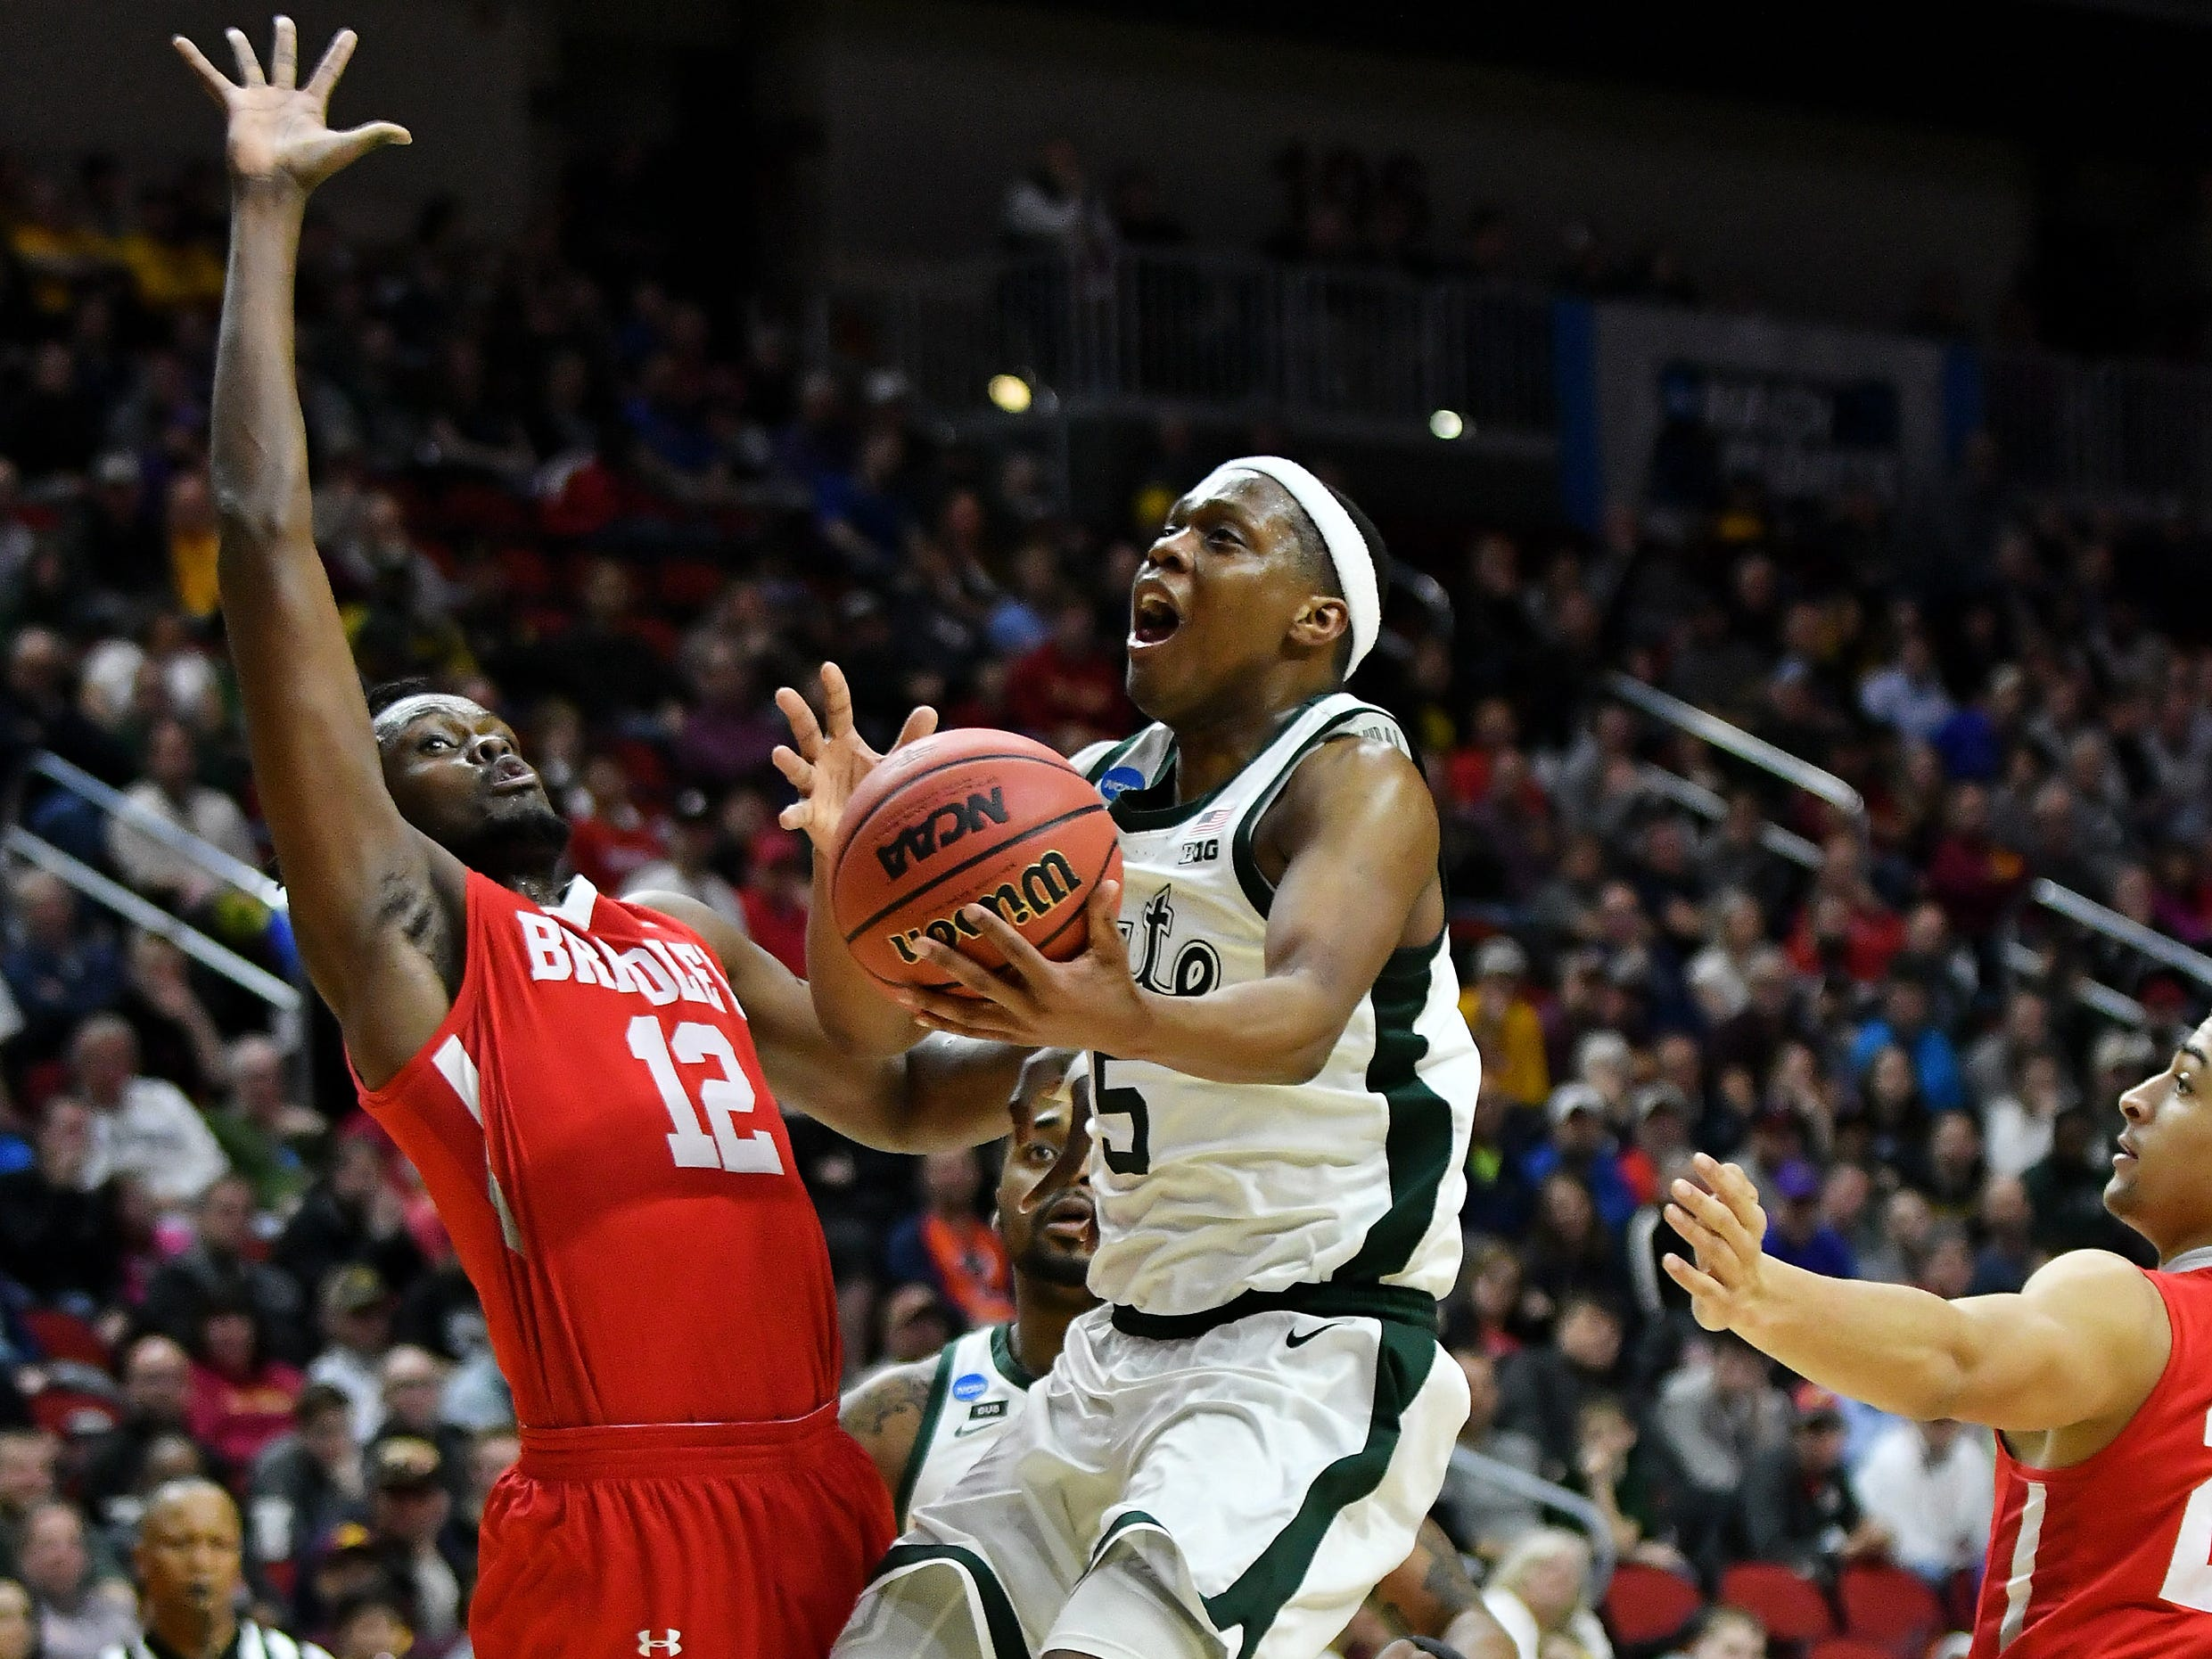 Bradley center Koch Bar (12) defends a drive by Michigan State guard Cassius Winston (5)  in the second half.